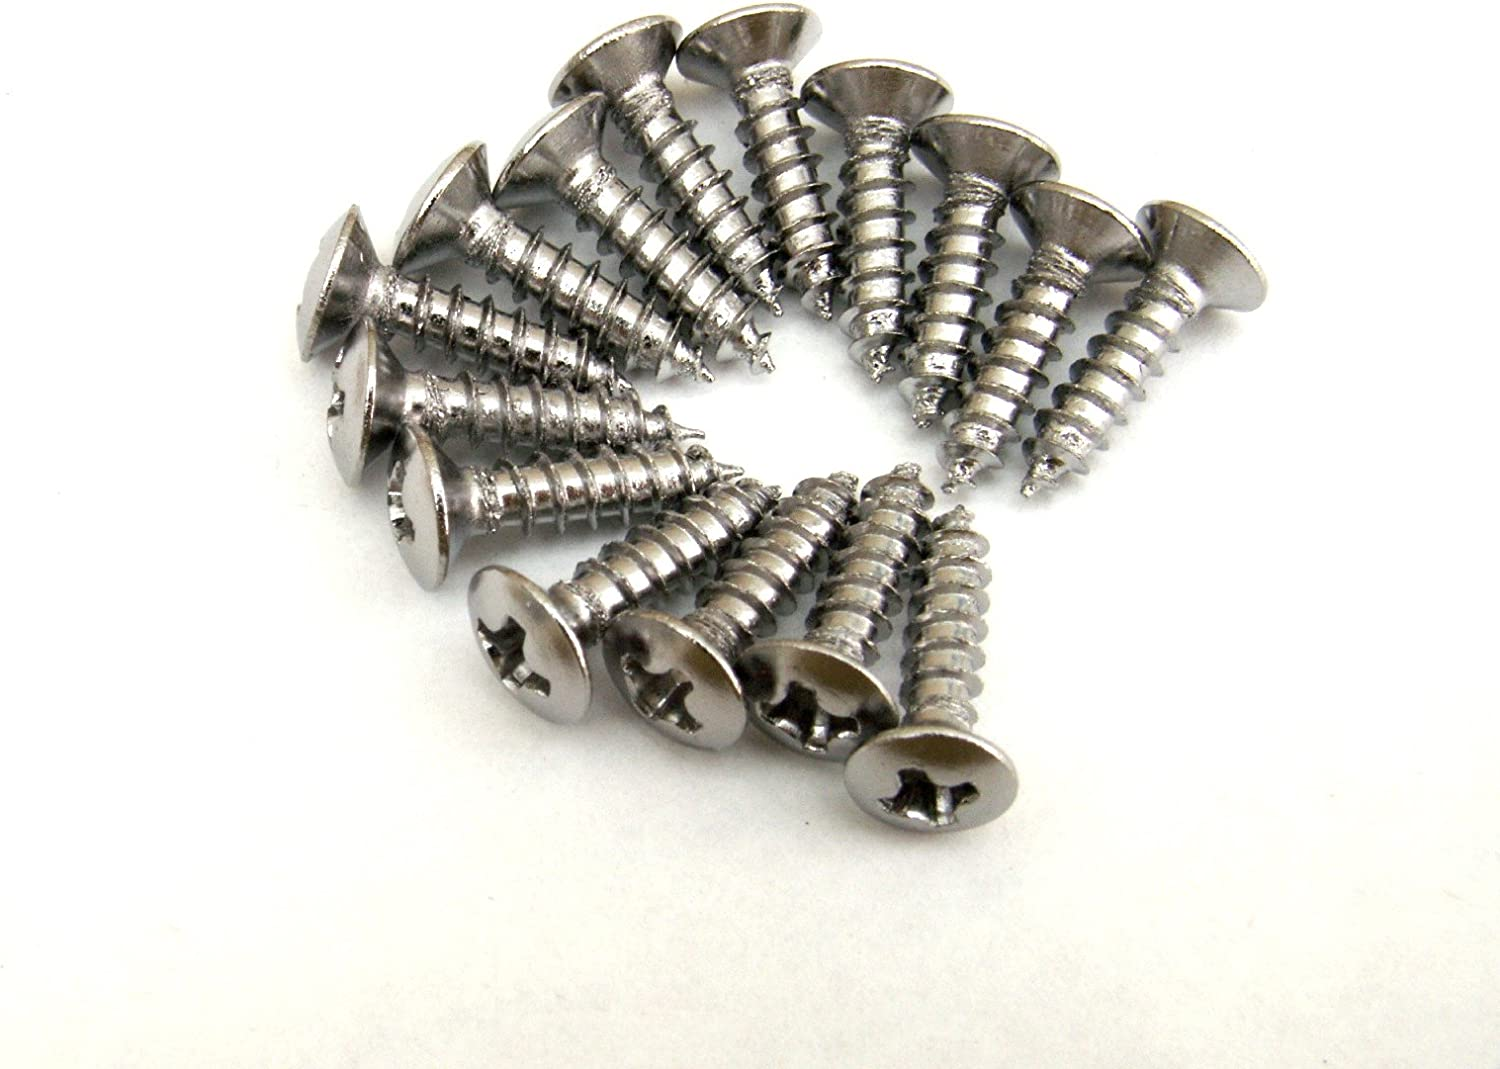 Black or Gold in almost any quantity SCRATCH PLATE PICKGUARD SCREWS; Chrome